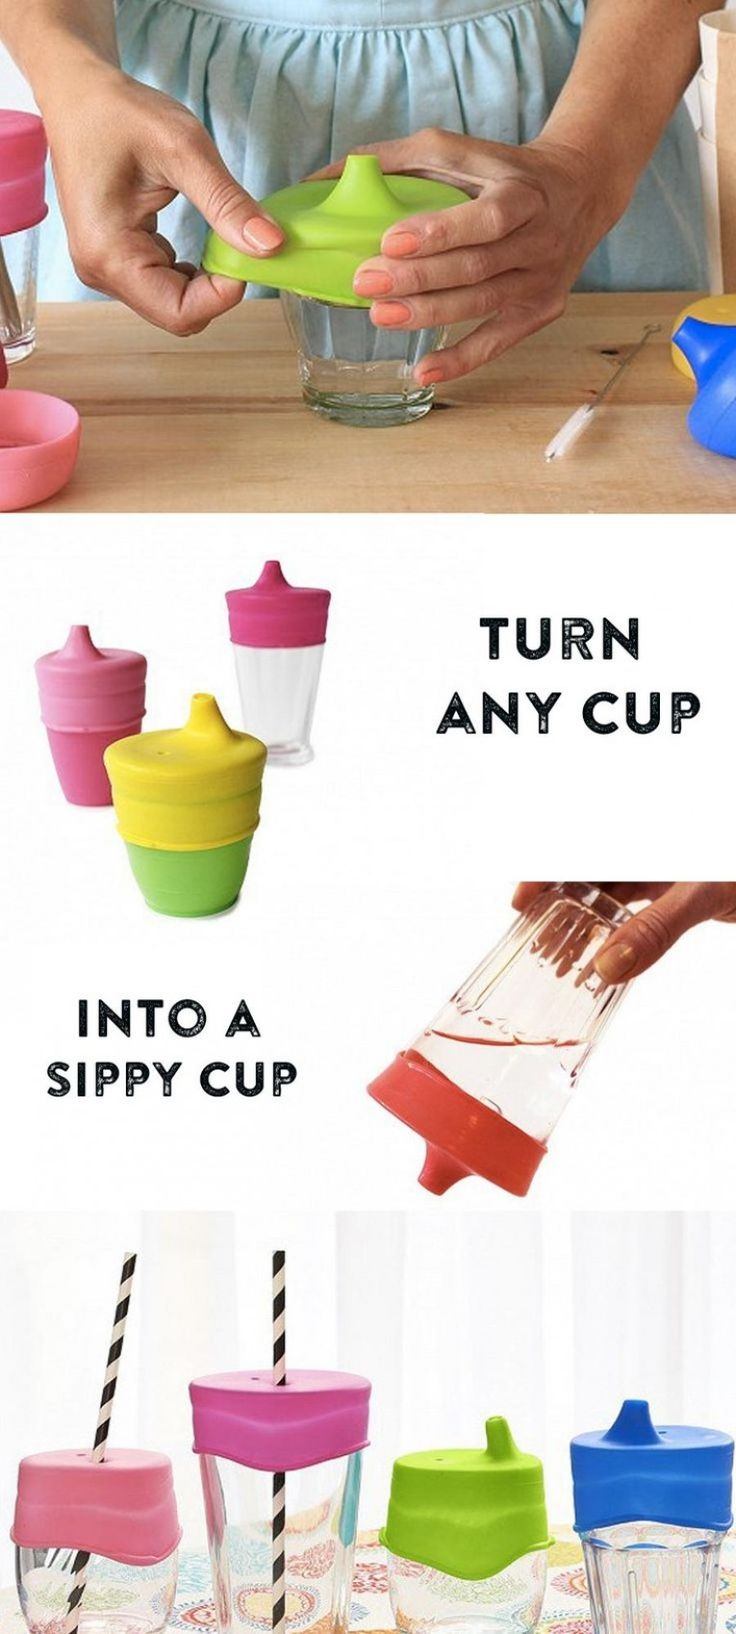 Agh maxing.  Kids cups get so disgusting this seems so easy to clean and it versatile